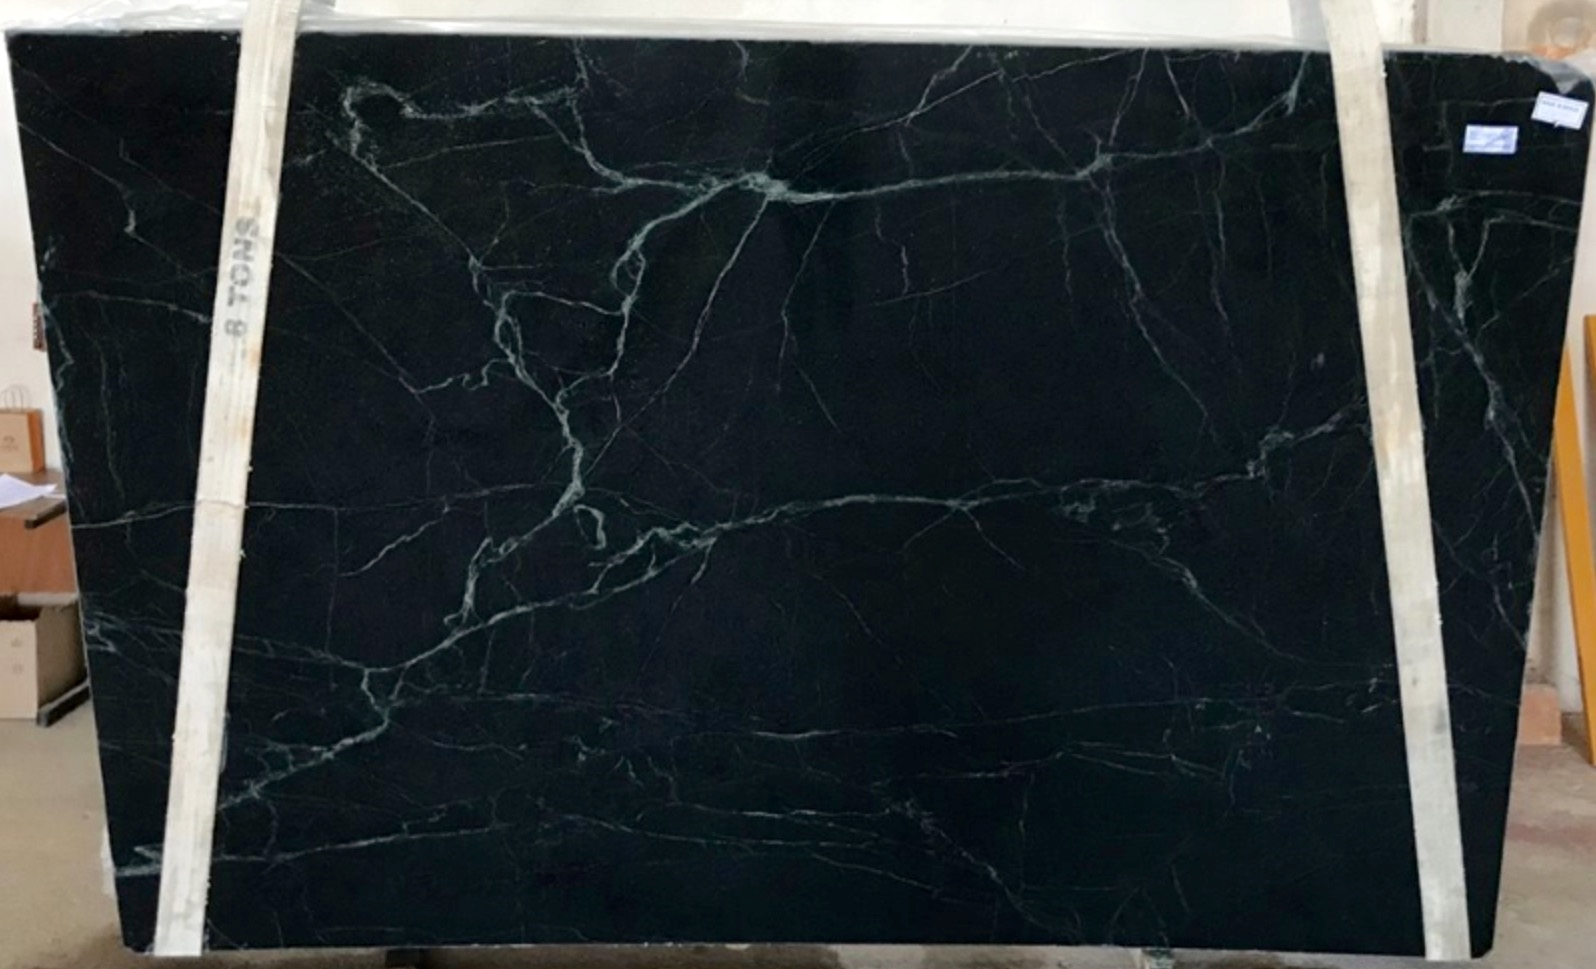 Soapstone  Rich color tones with veining are characteristic of this stone. Blues, greens, greys and black are the prevailing color palette for this selection.